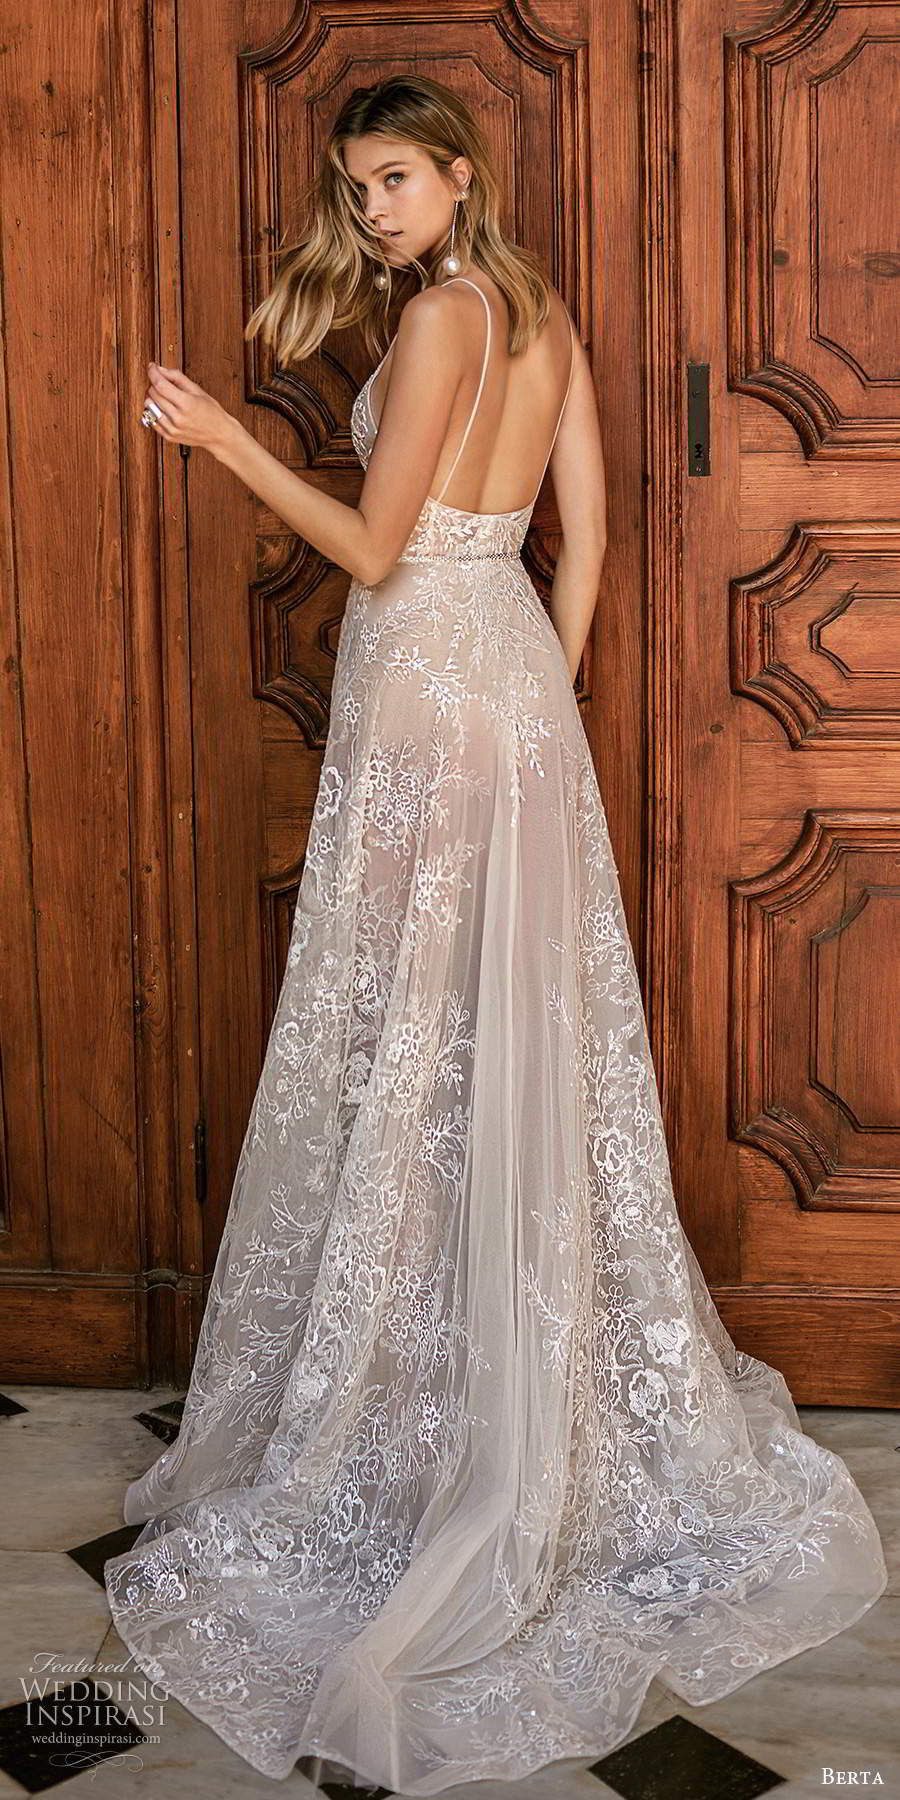 berta 2020 muse bridal sleeveless thin straps v neckline fully embellished lace a line ball gown romantic wedding dess chapel train (1) bv